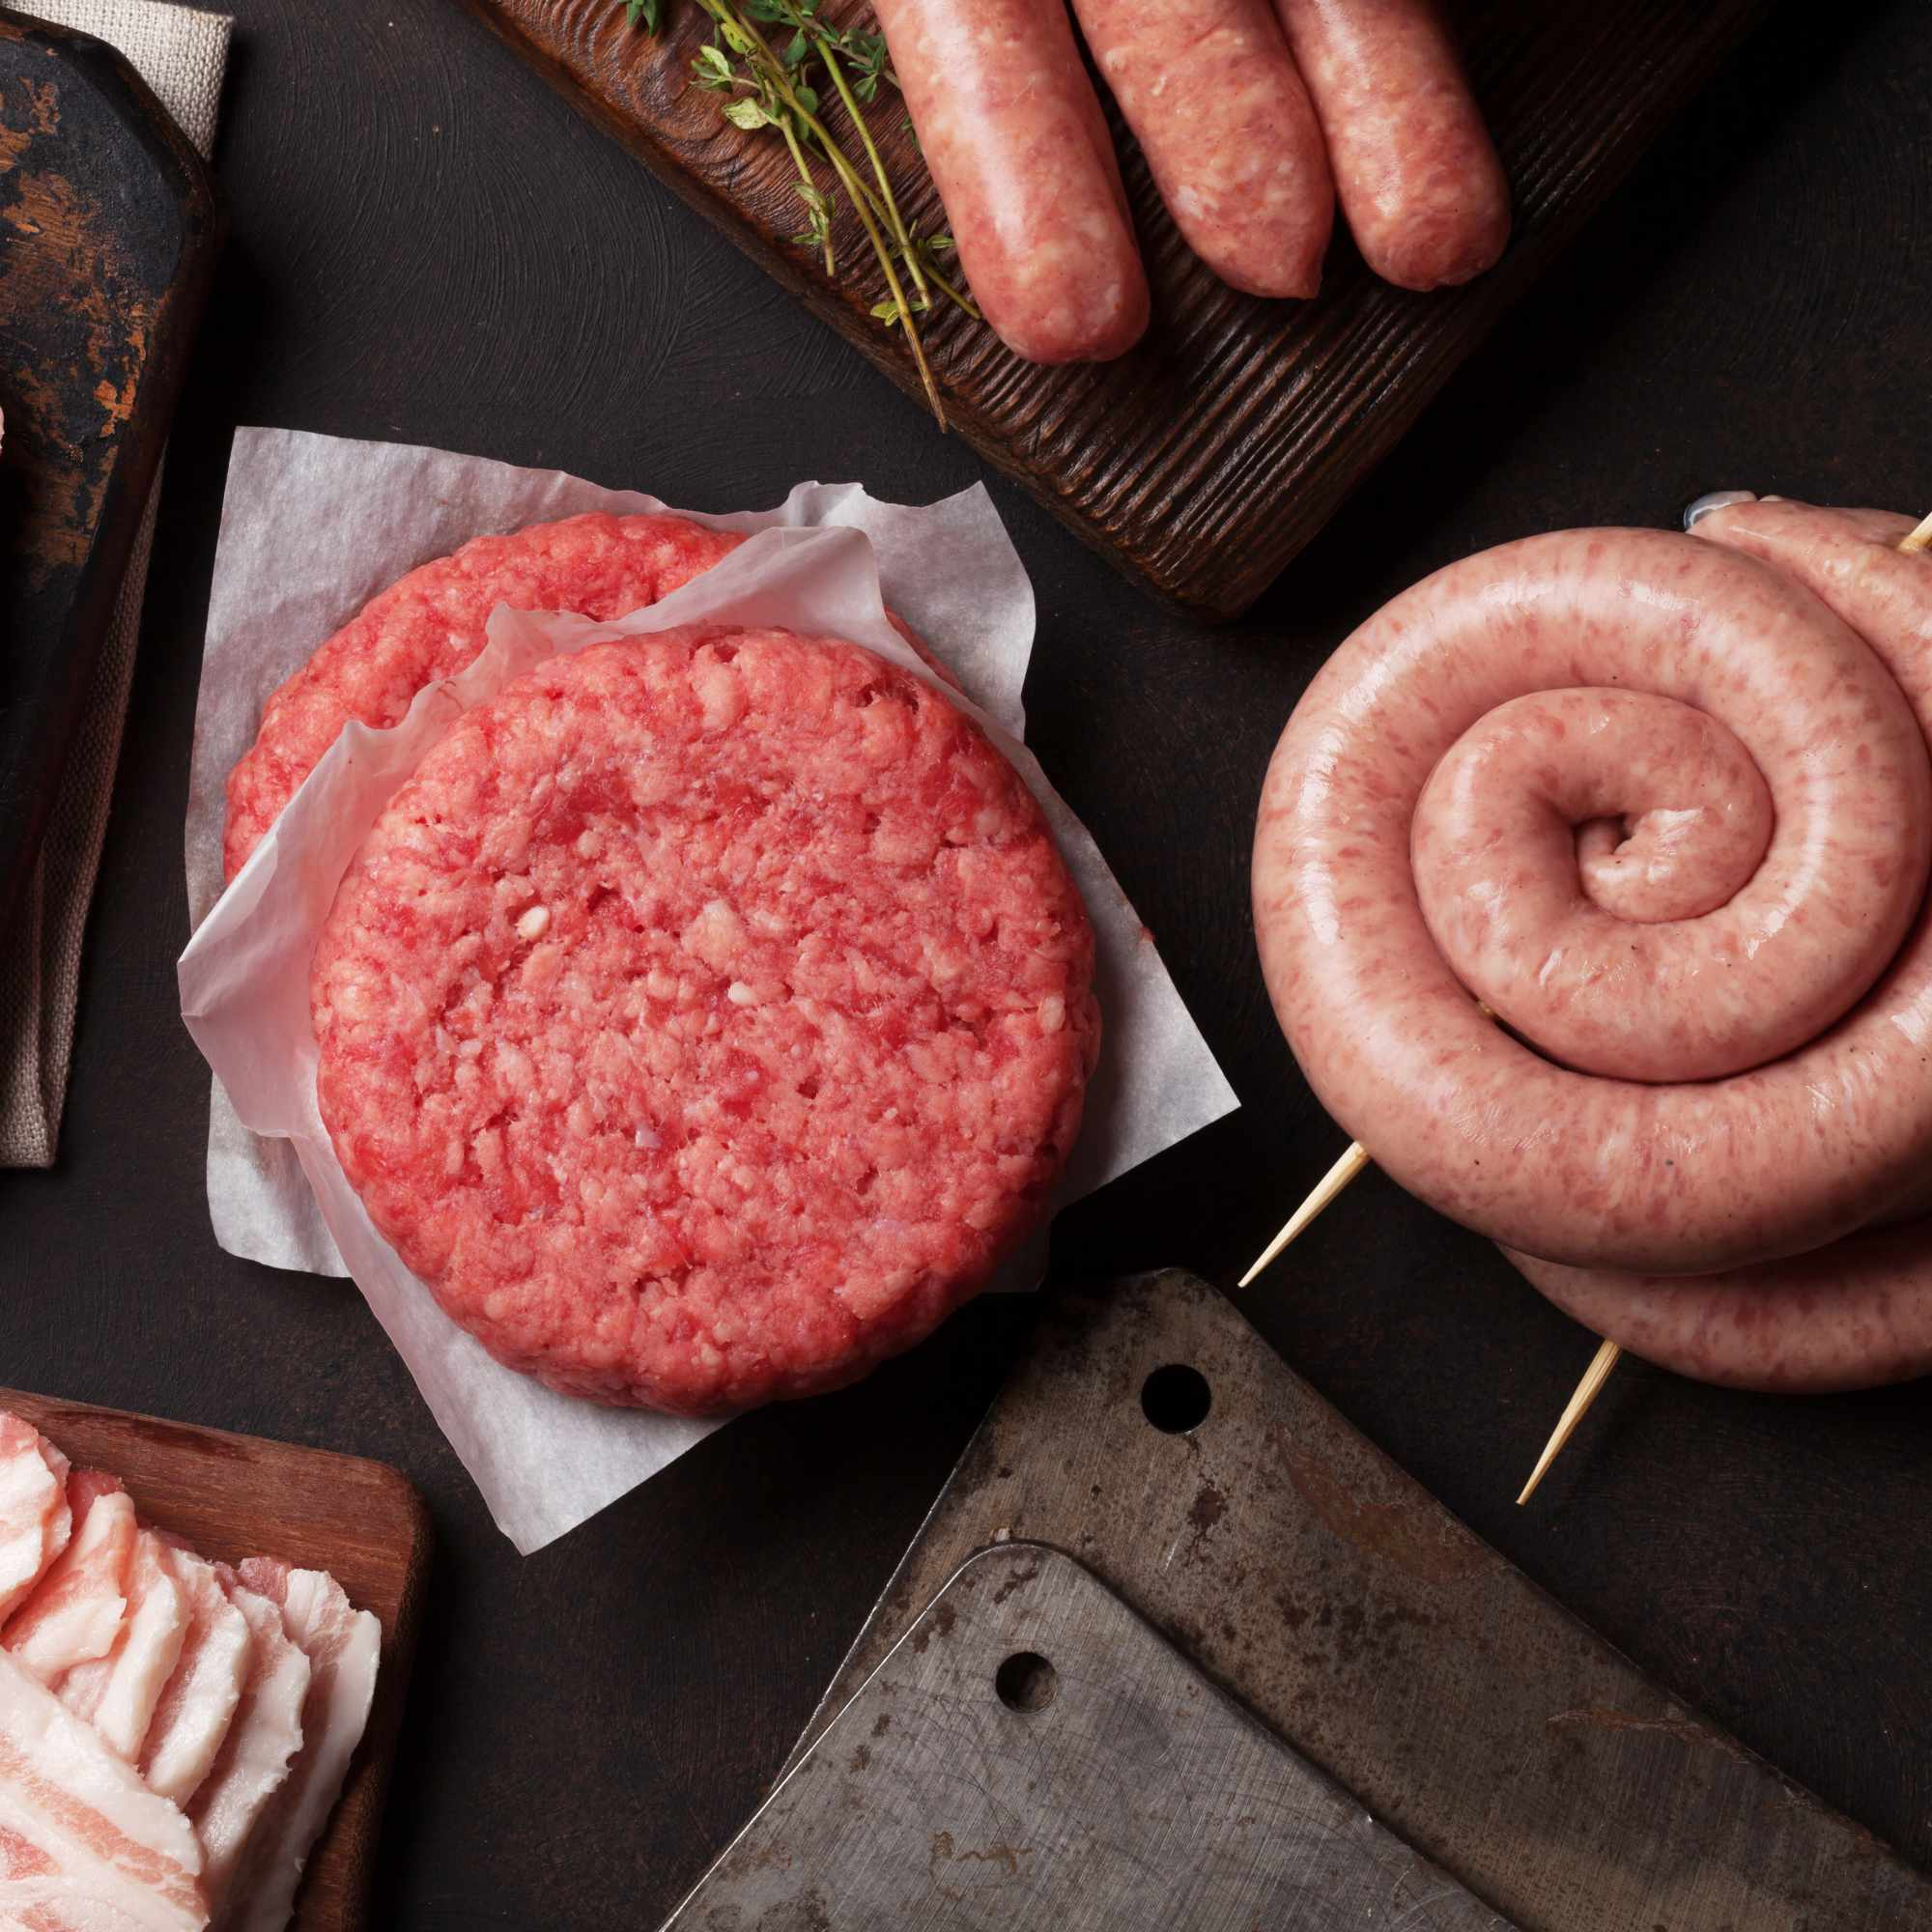 raw-meat-and-sausages-PY7DTL6